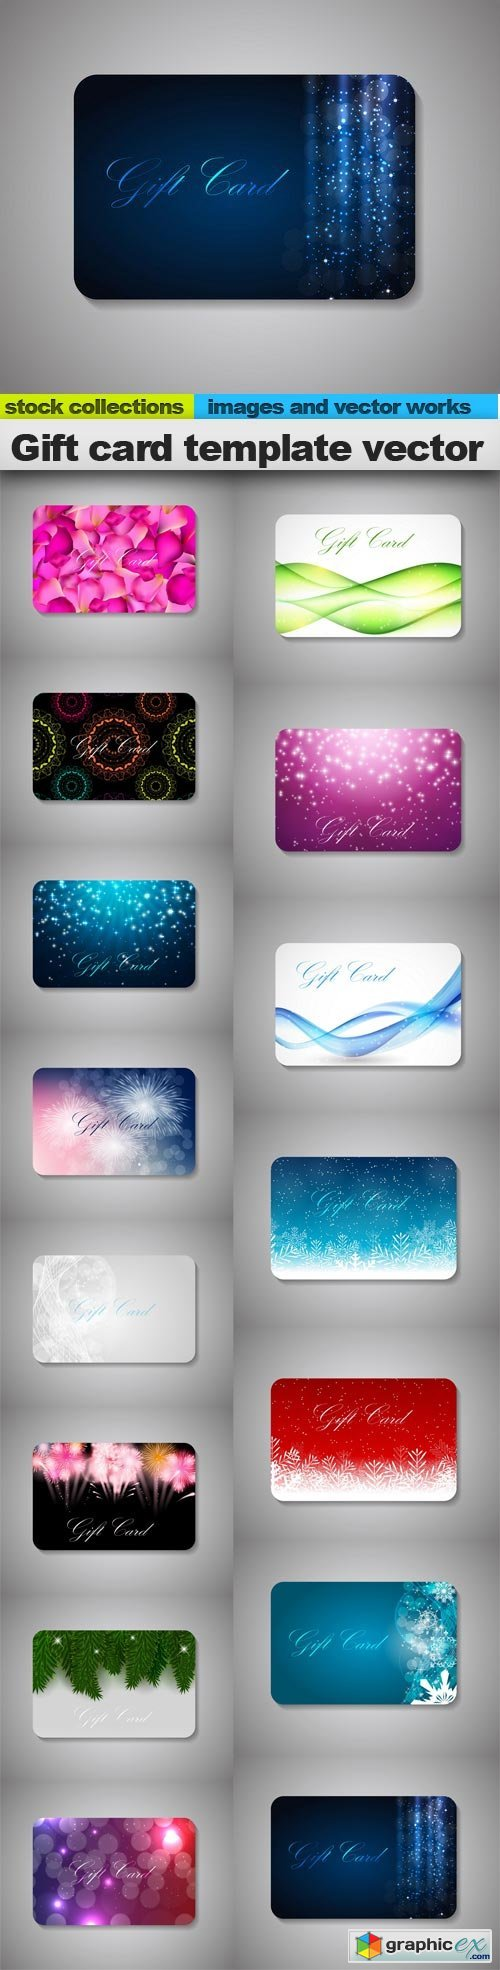 Gift card template vector, 15 x EPS